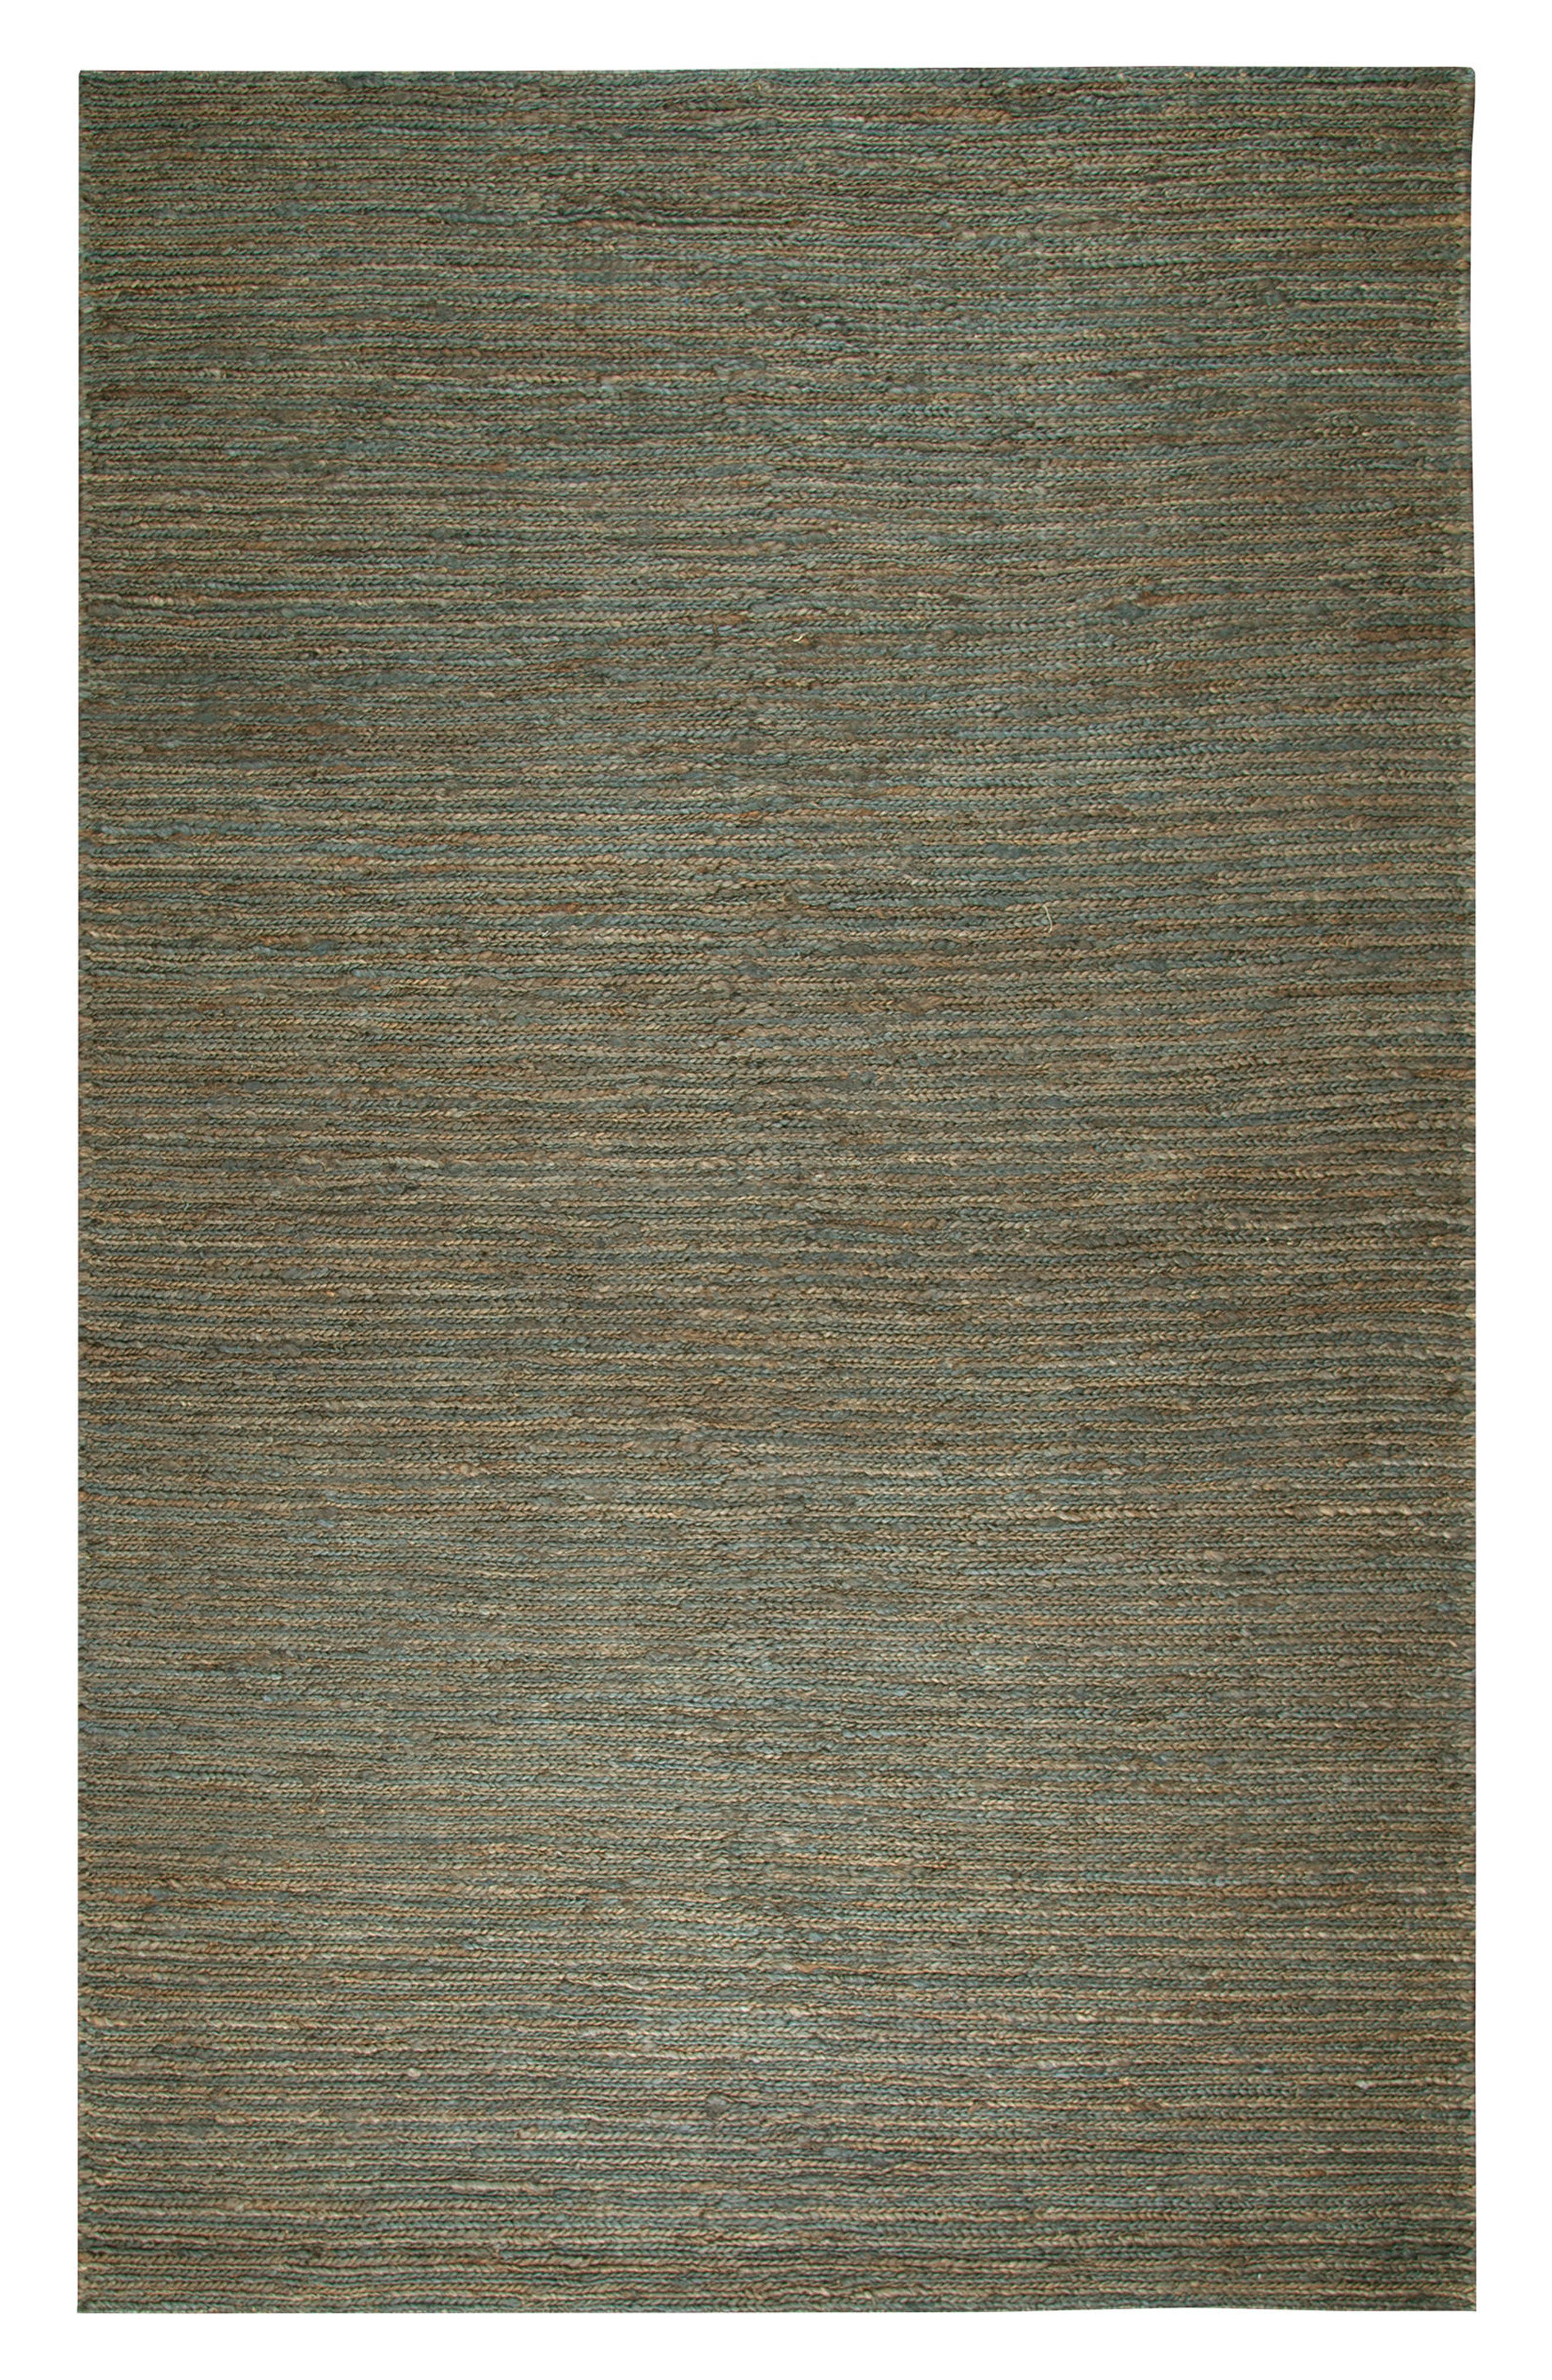 'Whittier Collection' Handwoven Jute Area Rug,                             Main thumbnail 1, color,                             400